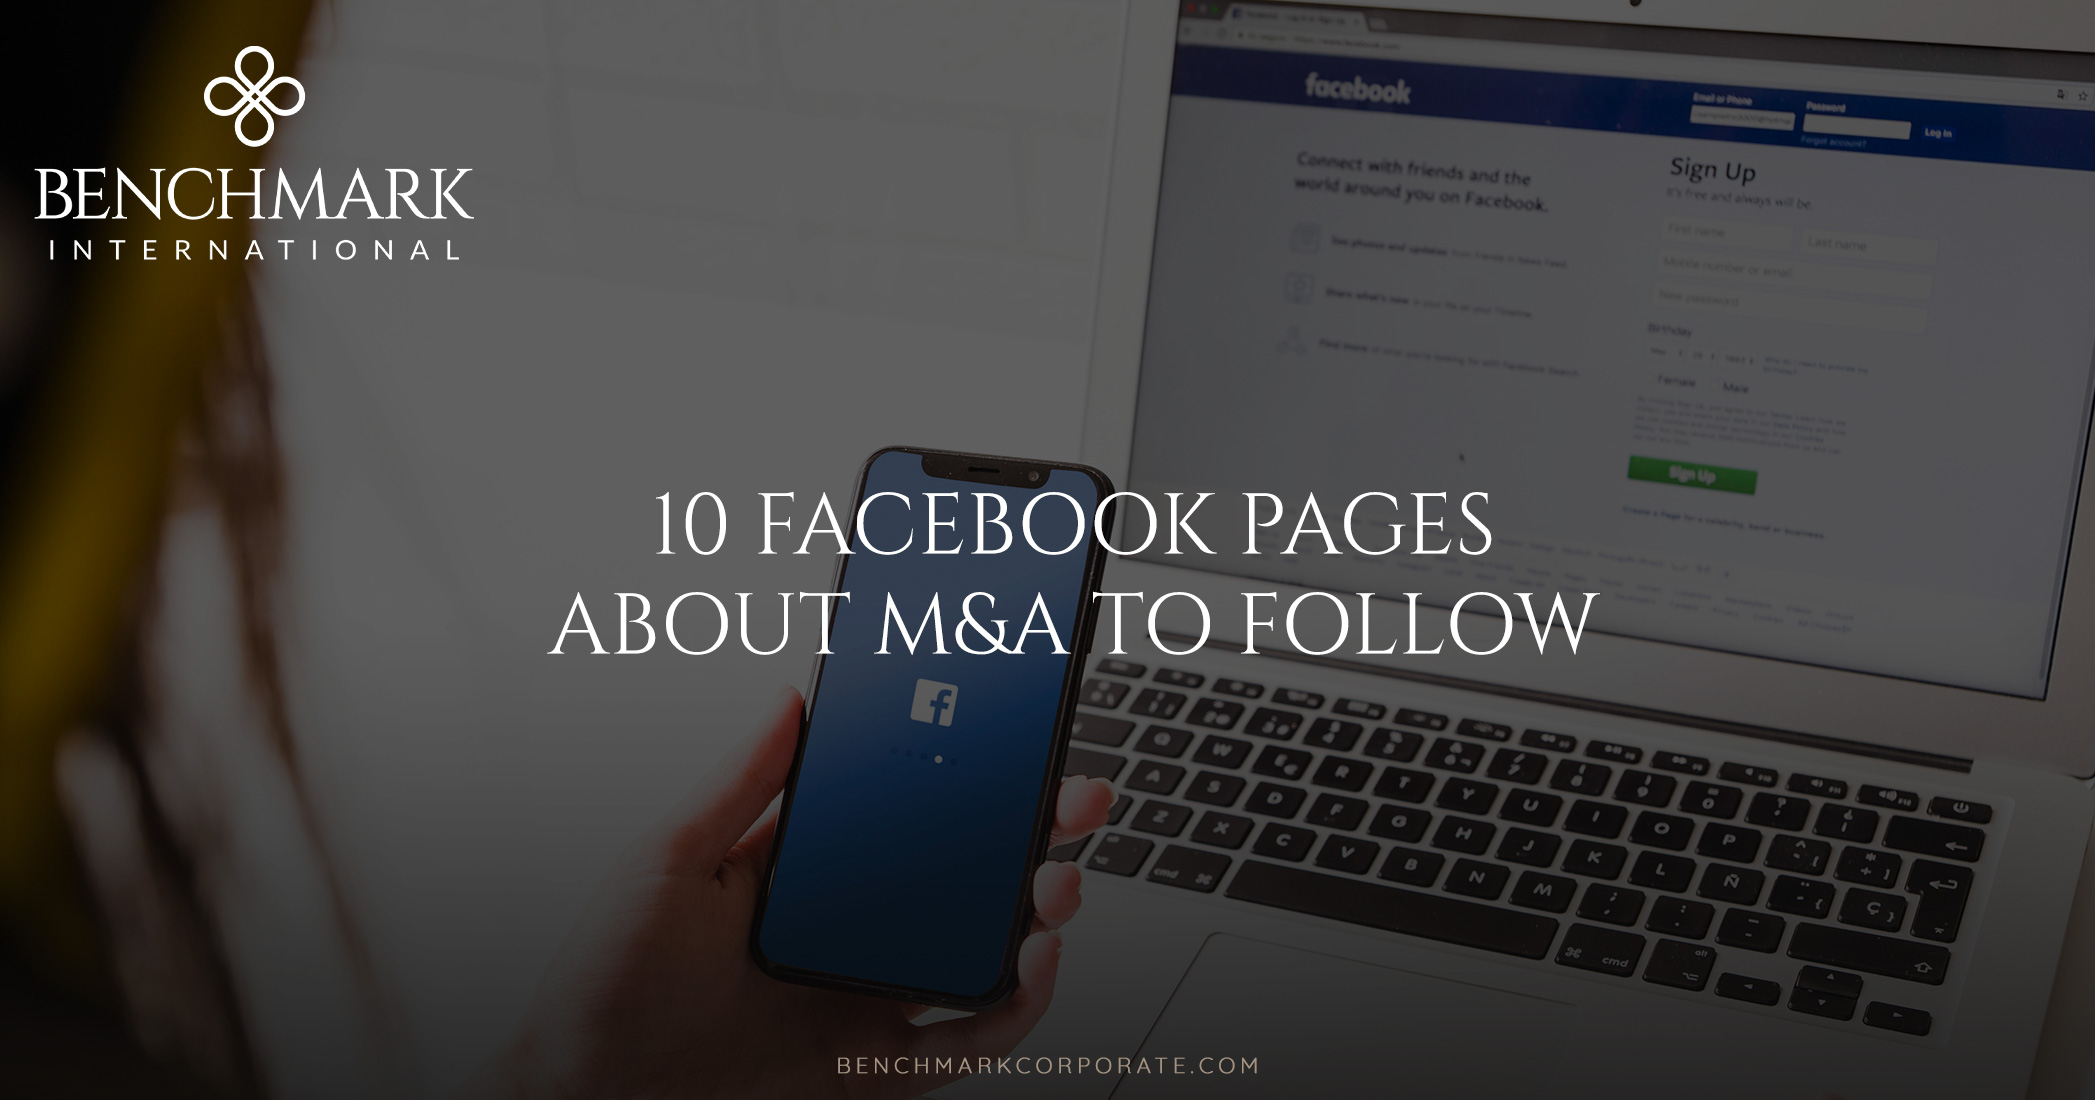 10 Facebook Pages About M&A To Follow